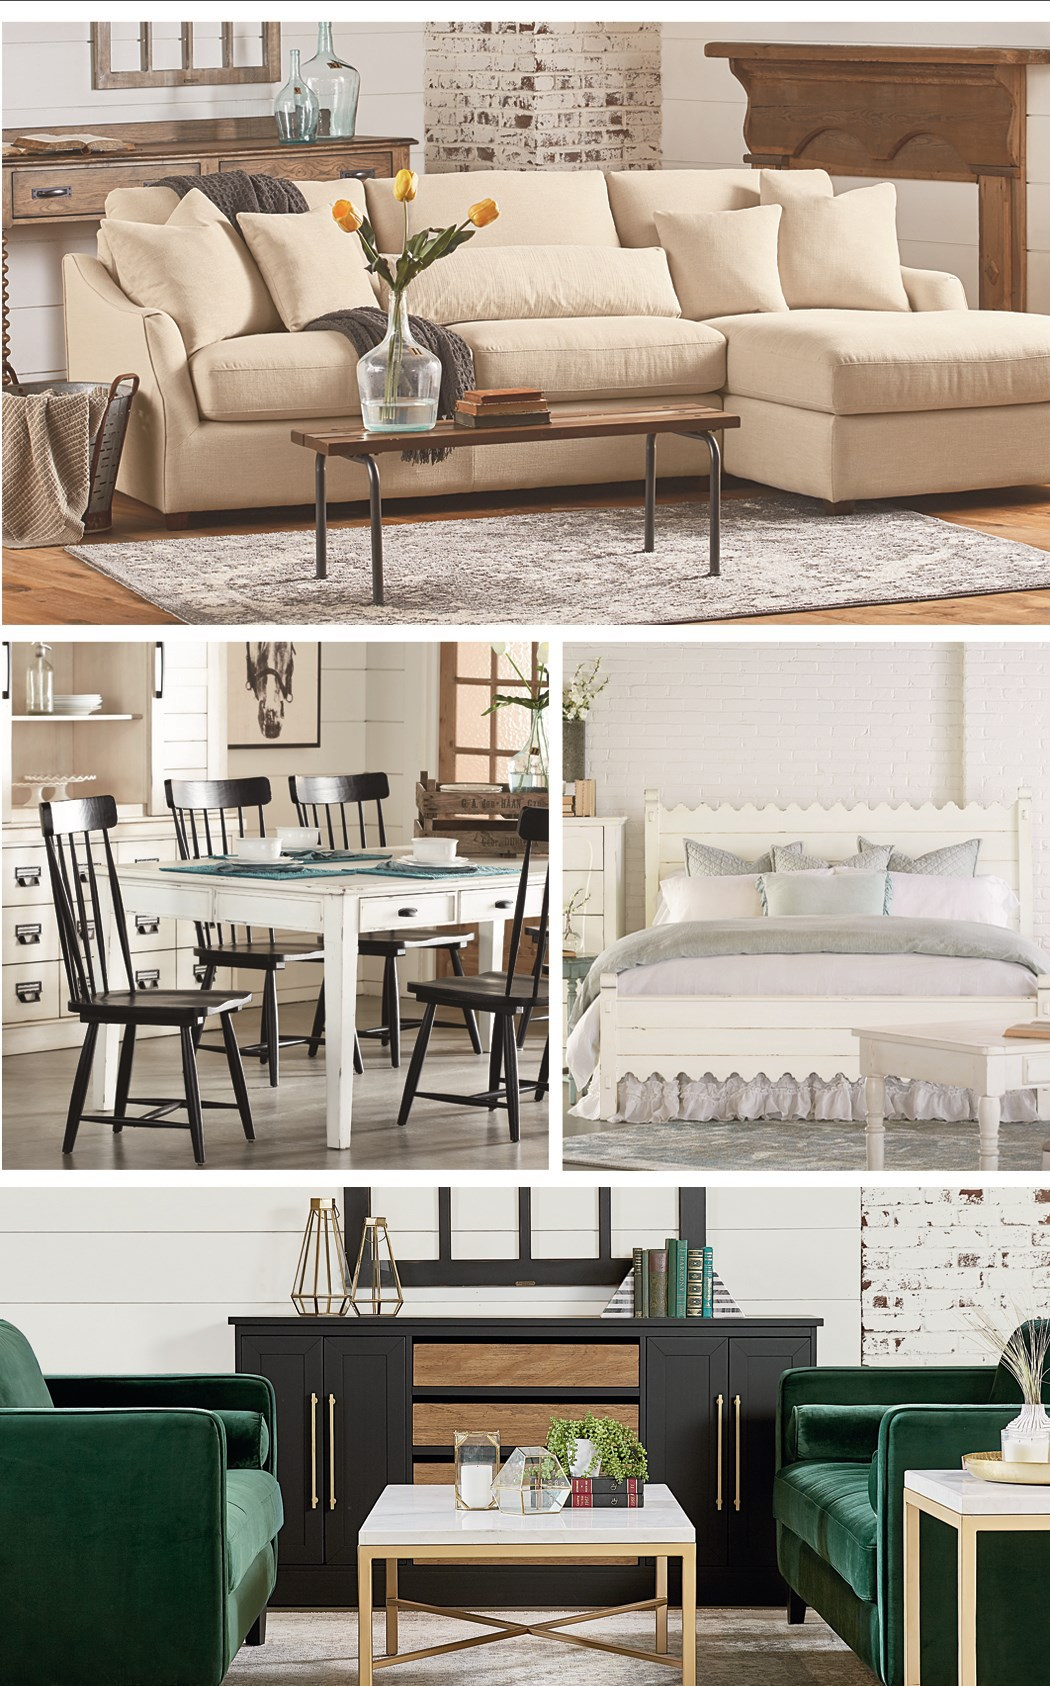 Magnolia Homejoanna Gaines | Baton Rouge And Lafayette With Regard To Magnolia Home Paradigm Sofa Chairs By Joanna Gaines (Photo 7 of 20)